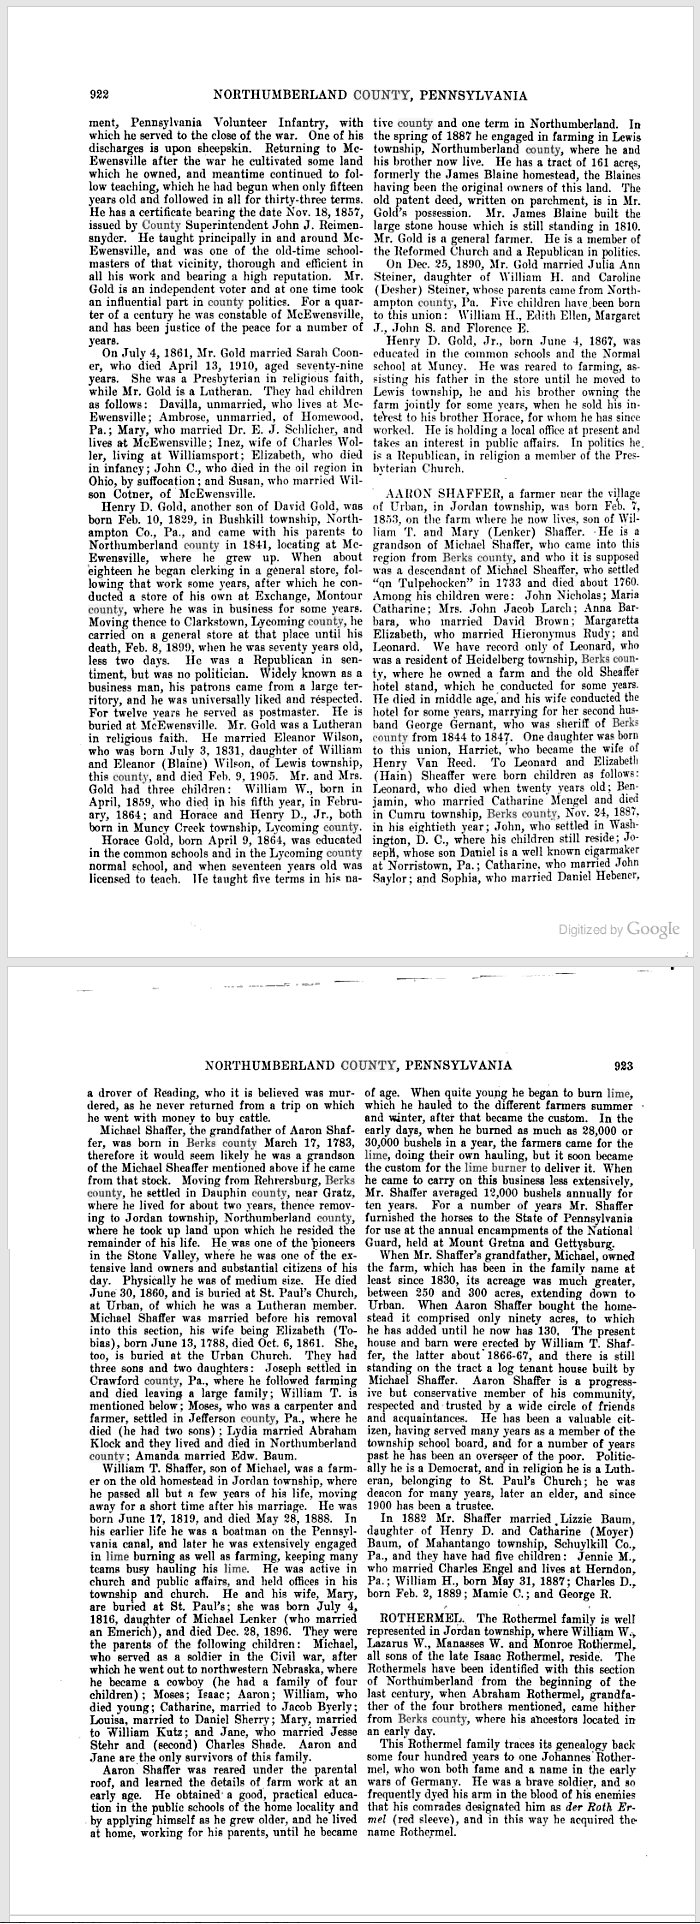 Genealogical and Biographical Annals of Northumberland County, p 922